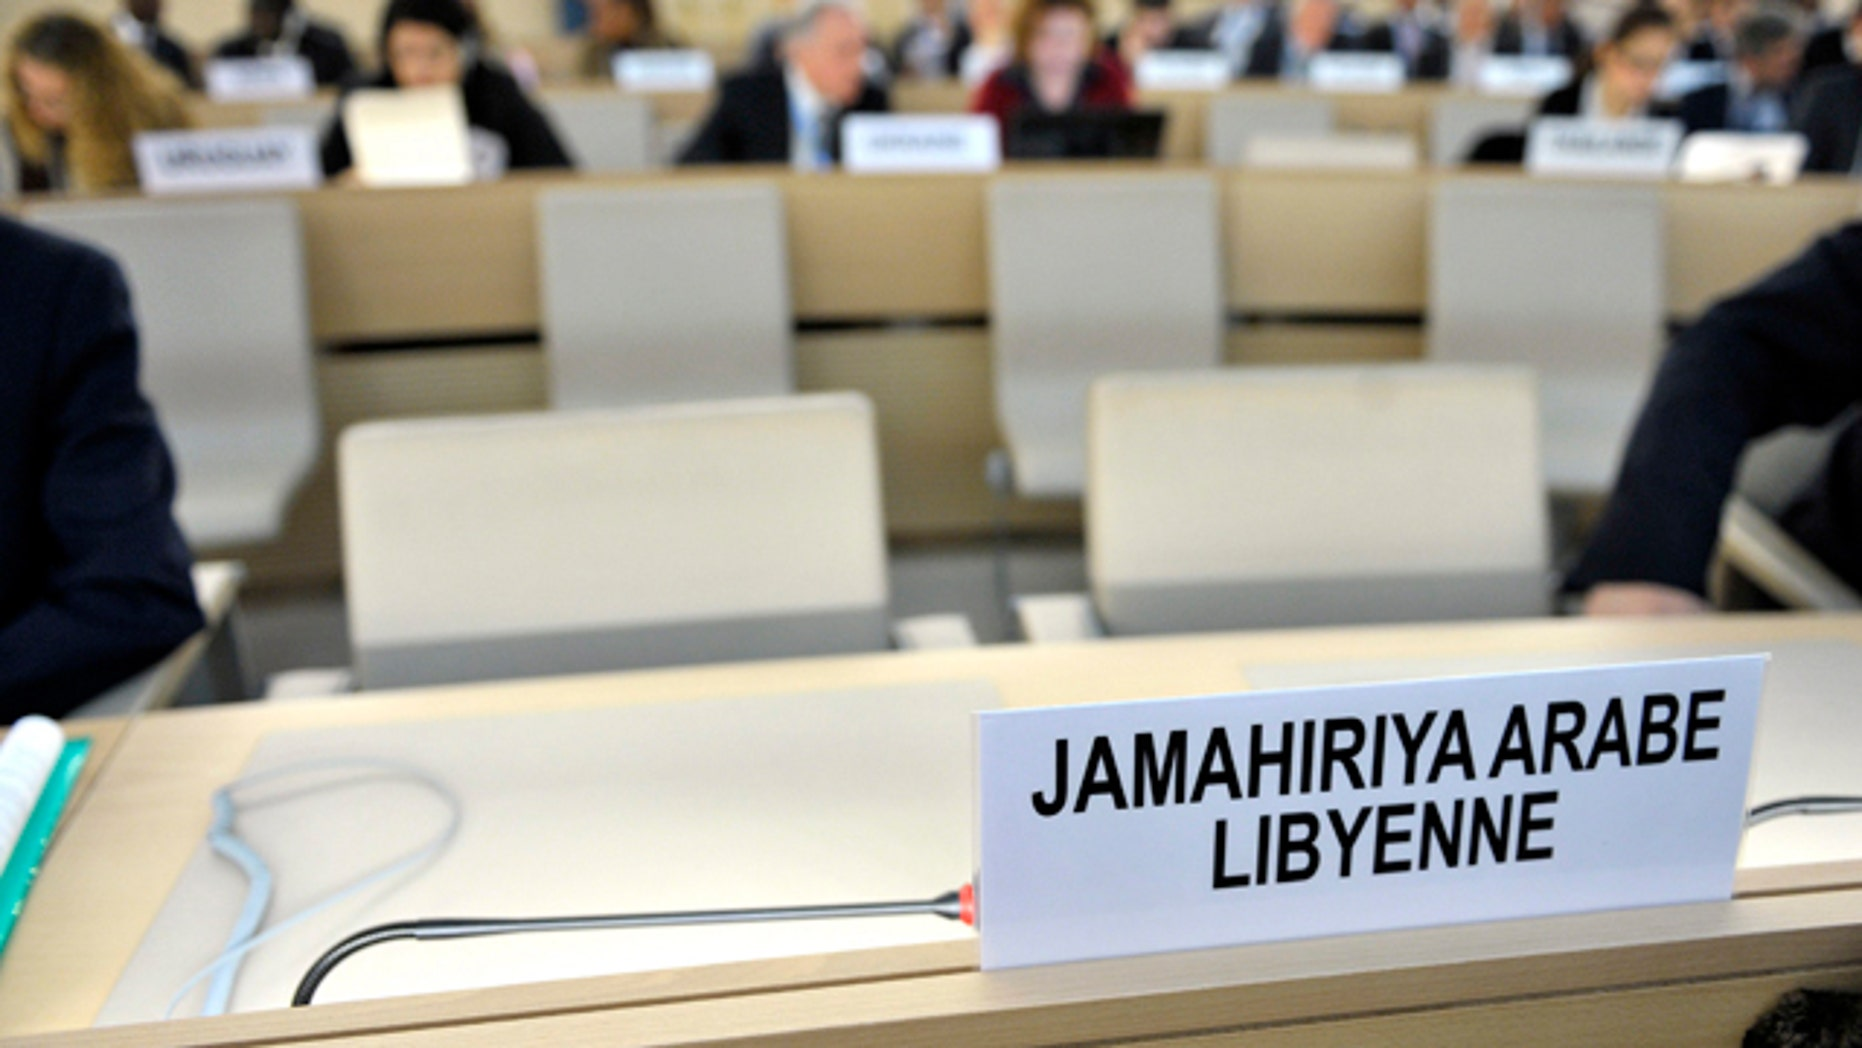 Feb. 25, 2011: The empty seats of the Libyan delegation are pictured before the Human Rights Council holds a Special Session on the situation of the human rights situation in the Libya at the European headquarters of the United Nations in Geneva